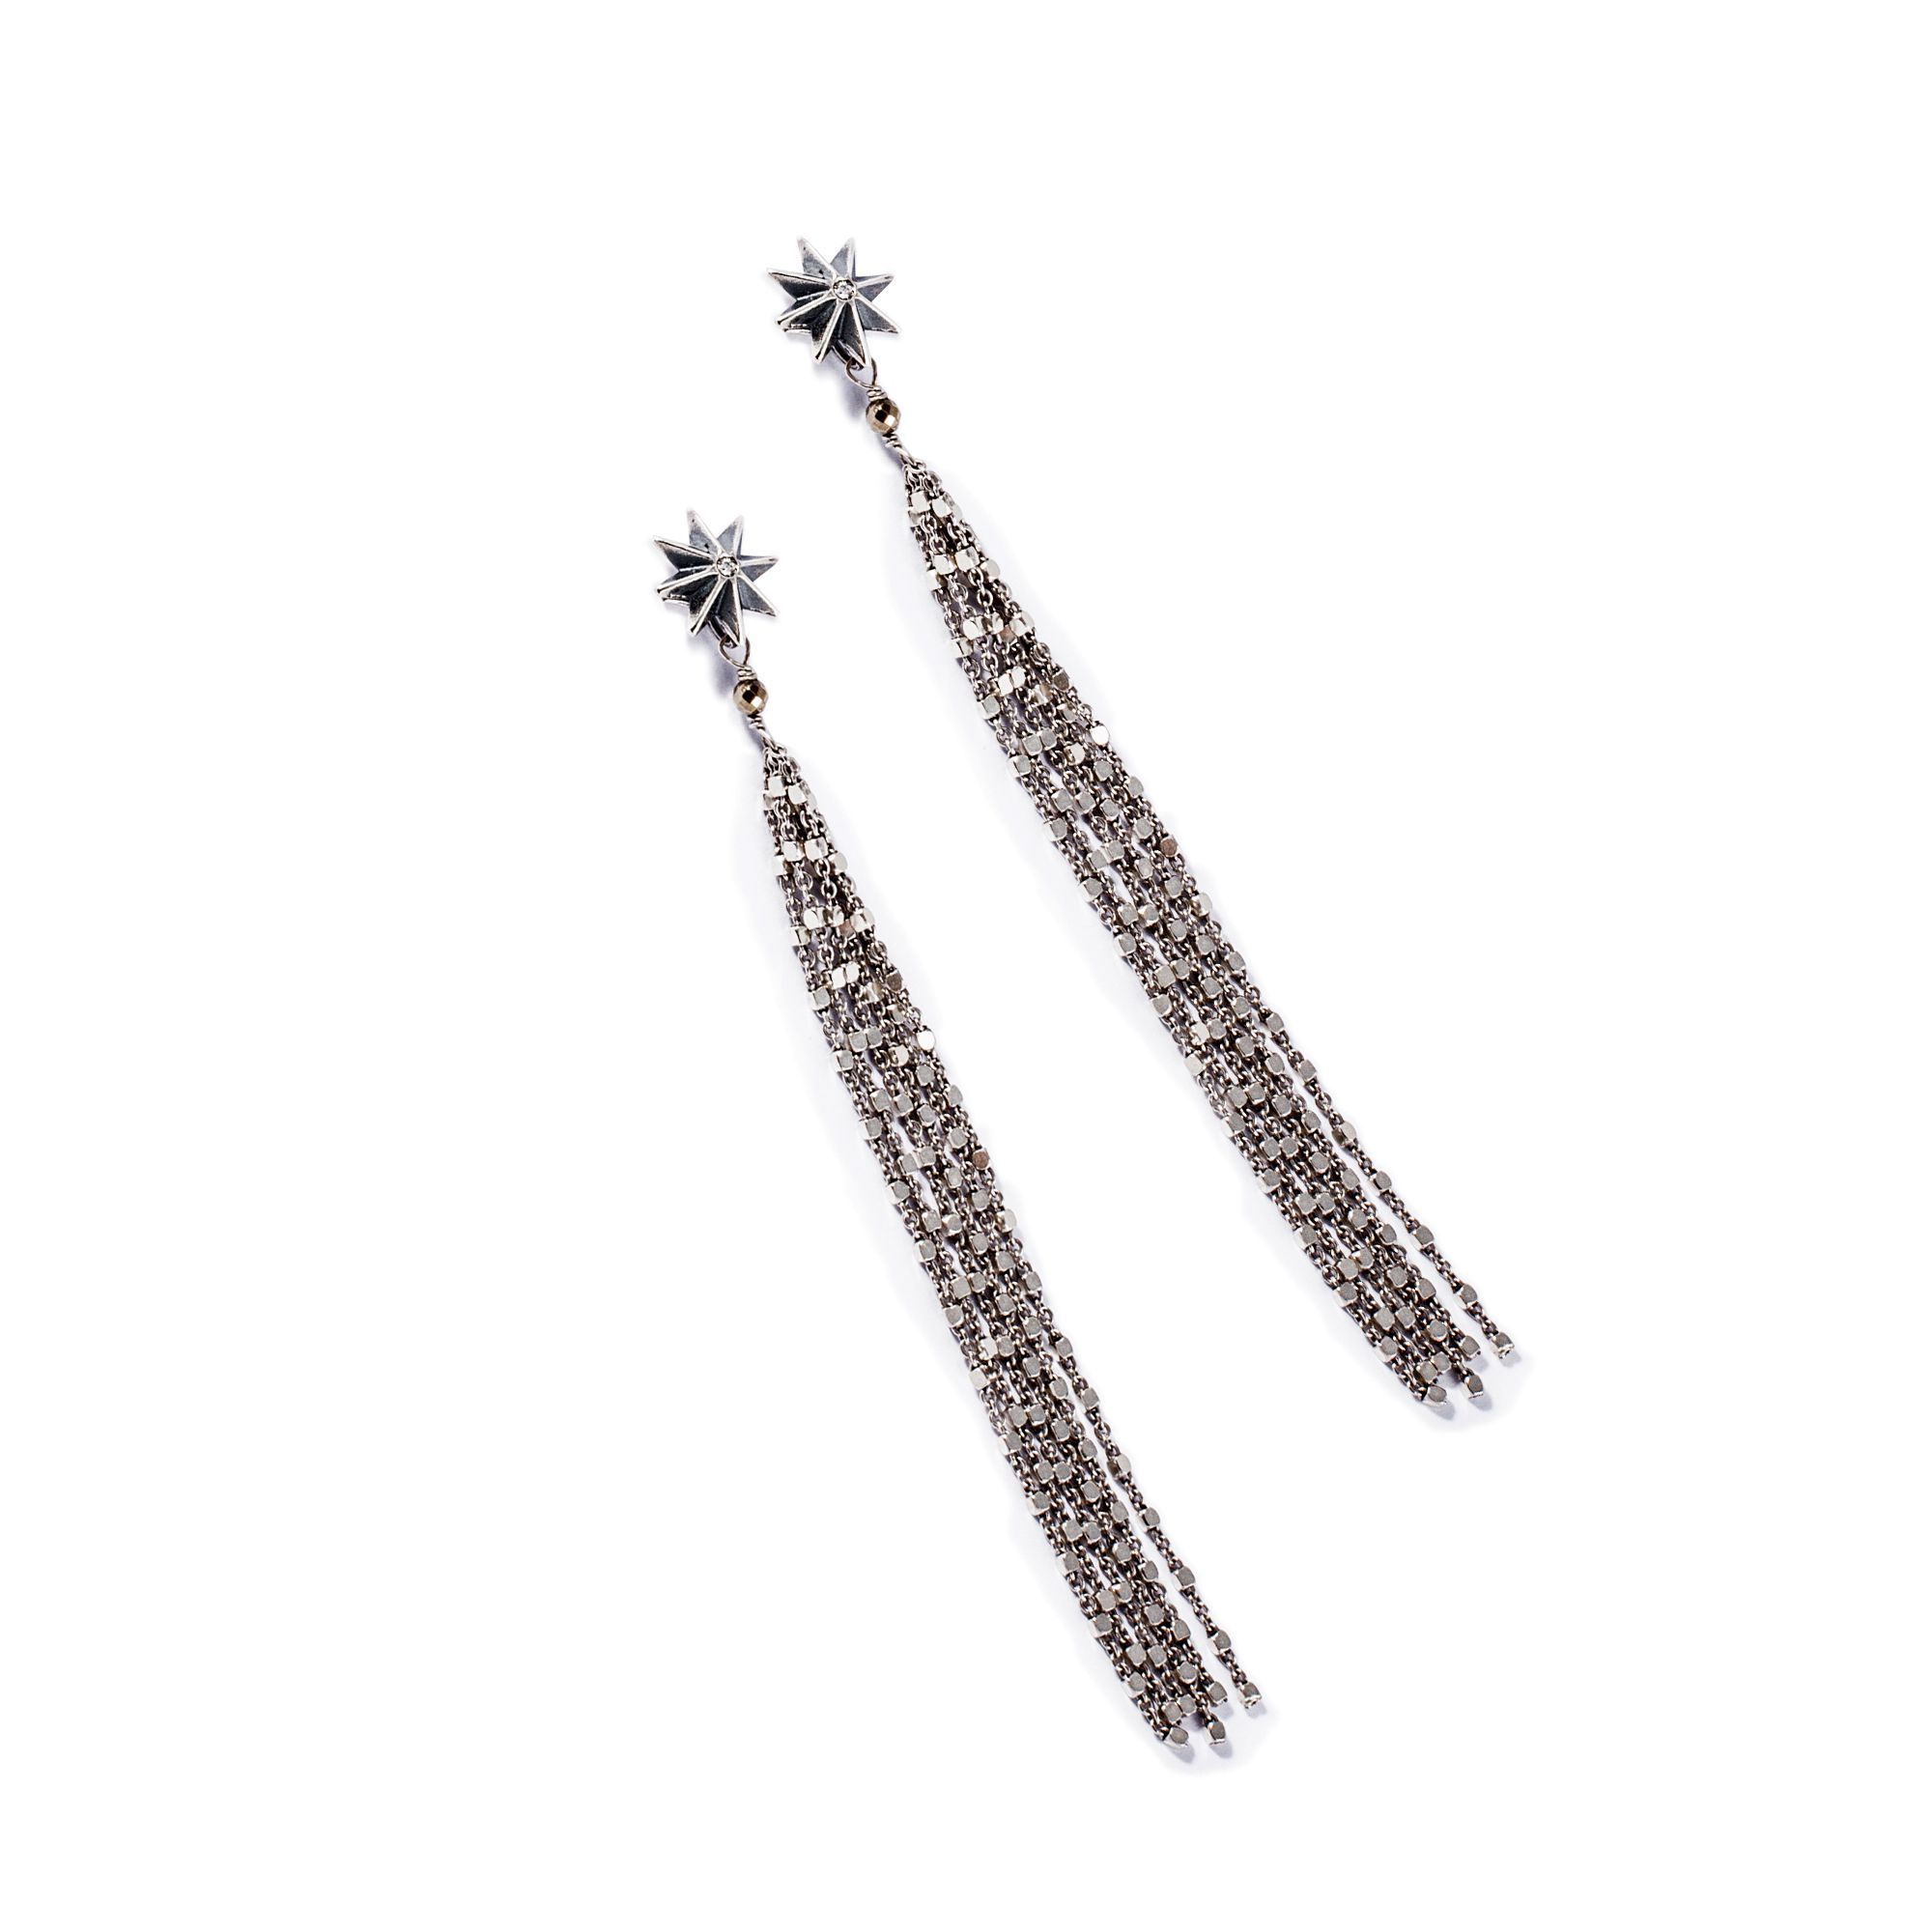 'Star' long earrings Earrings in silver